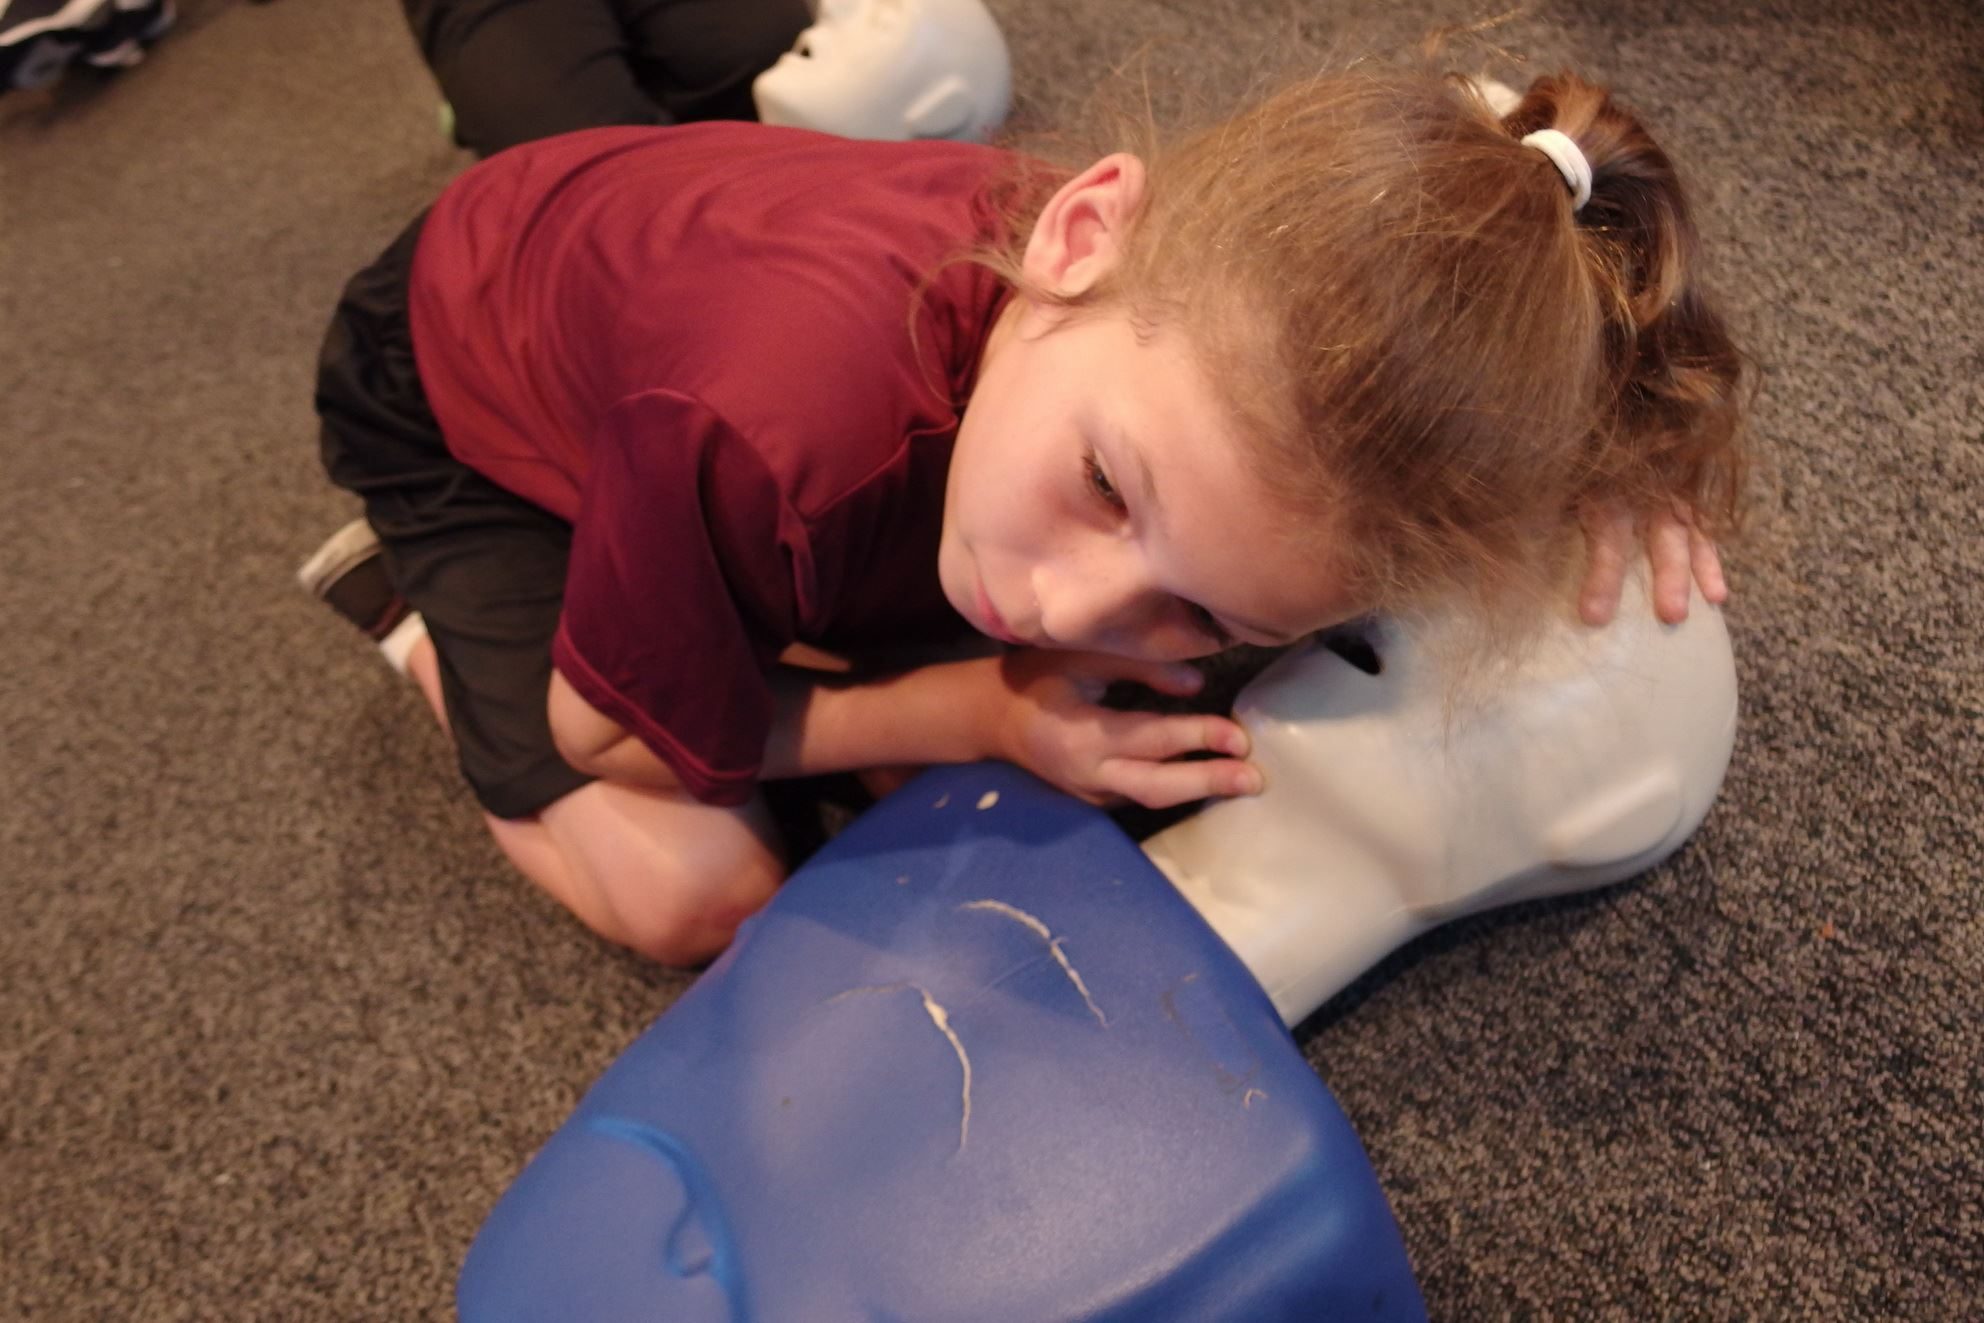 Using a Dummy to Practice CPR